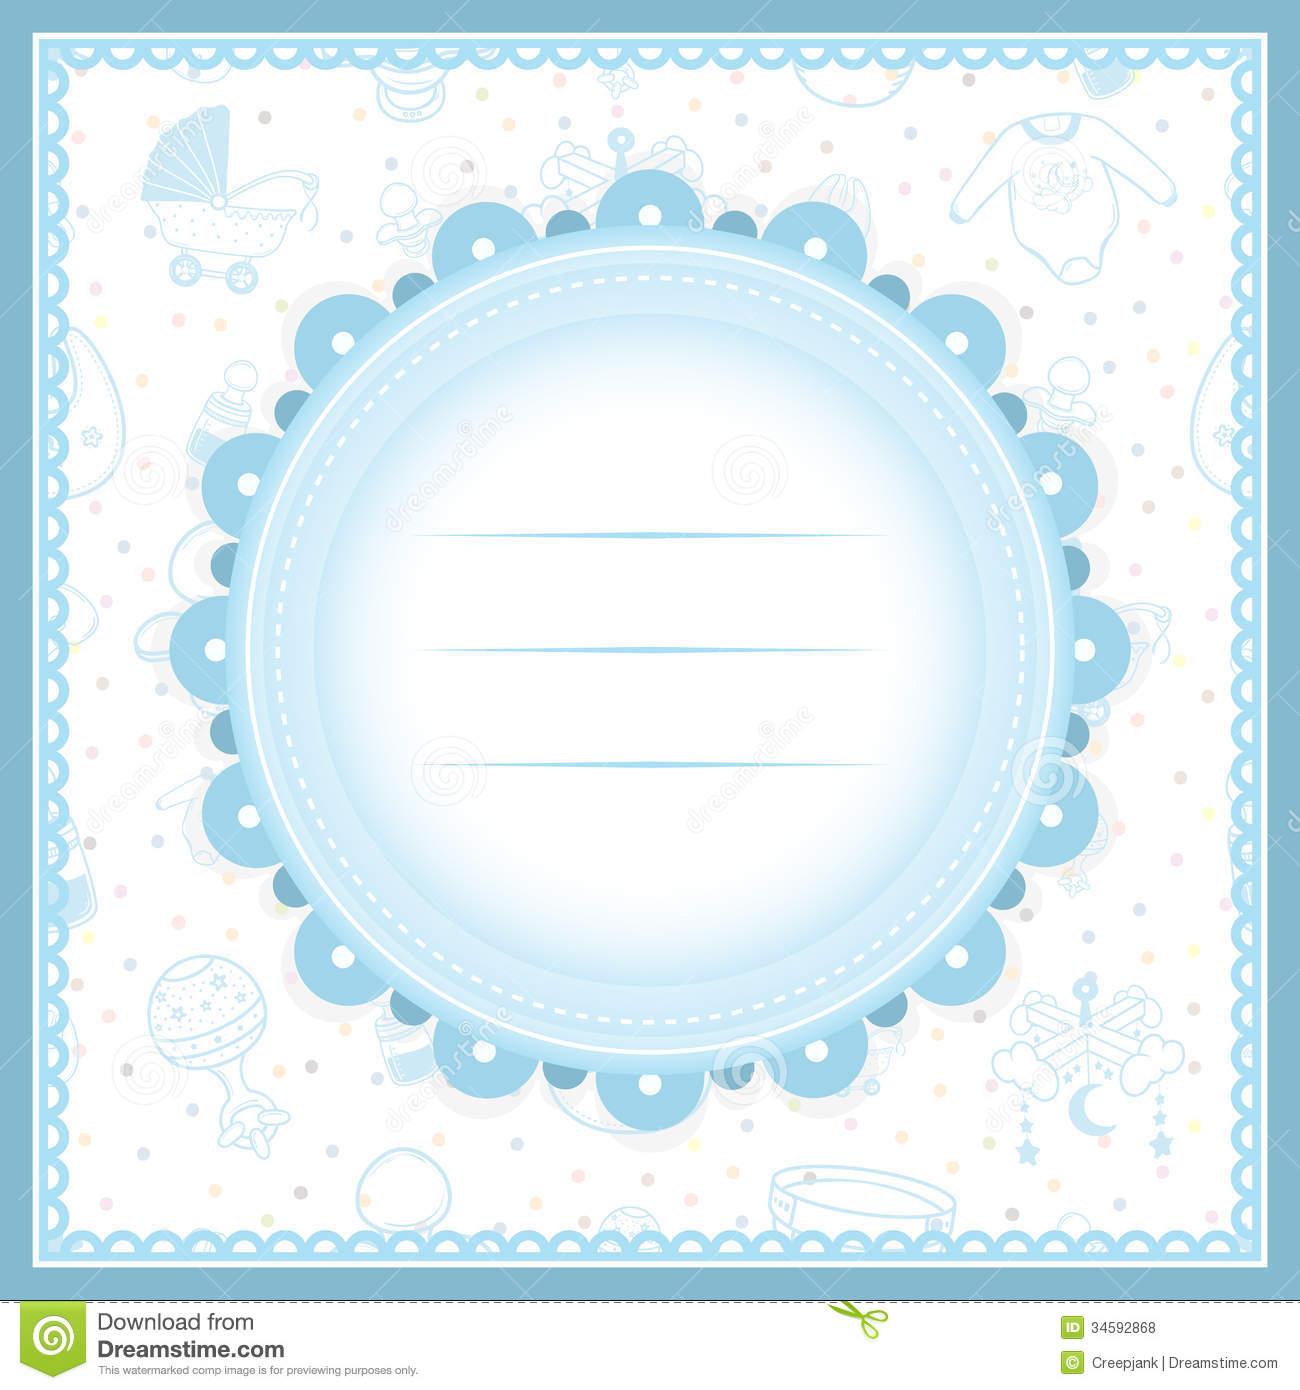 Baby shower greeting card for boy stock illustration baby shower greeting card for boy kristyandbryce Image collections